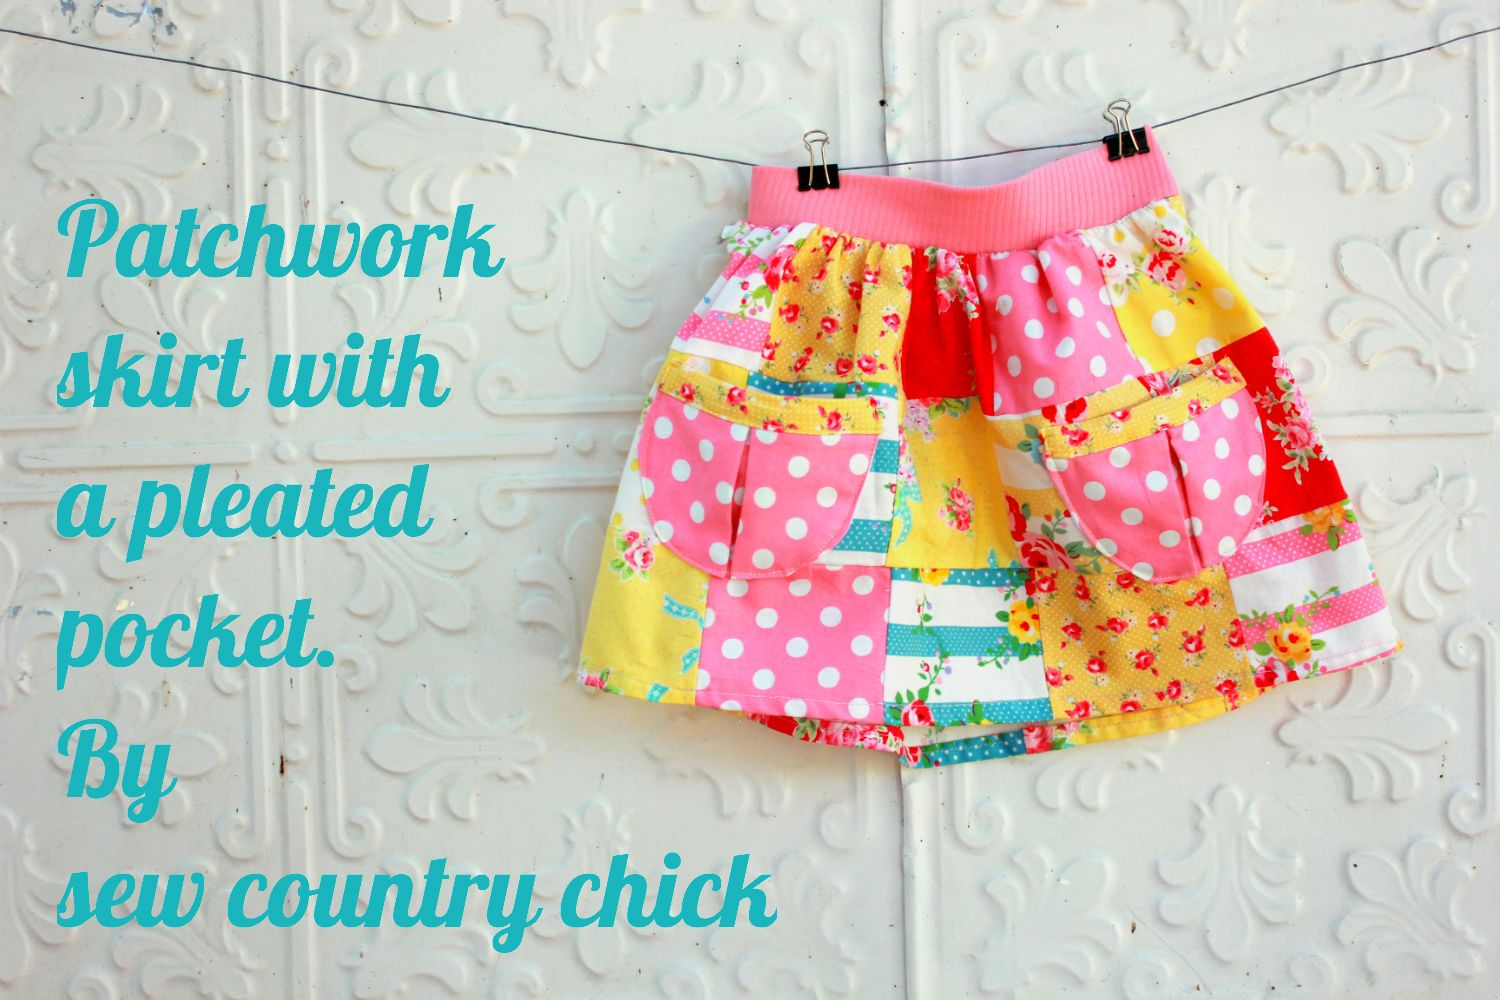 Patchwork girls skirt with pleated pockets tutorial || Sew Country Chick